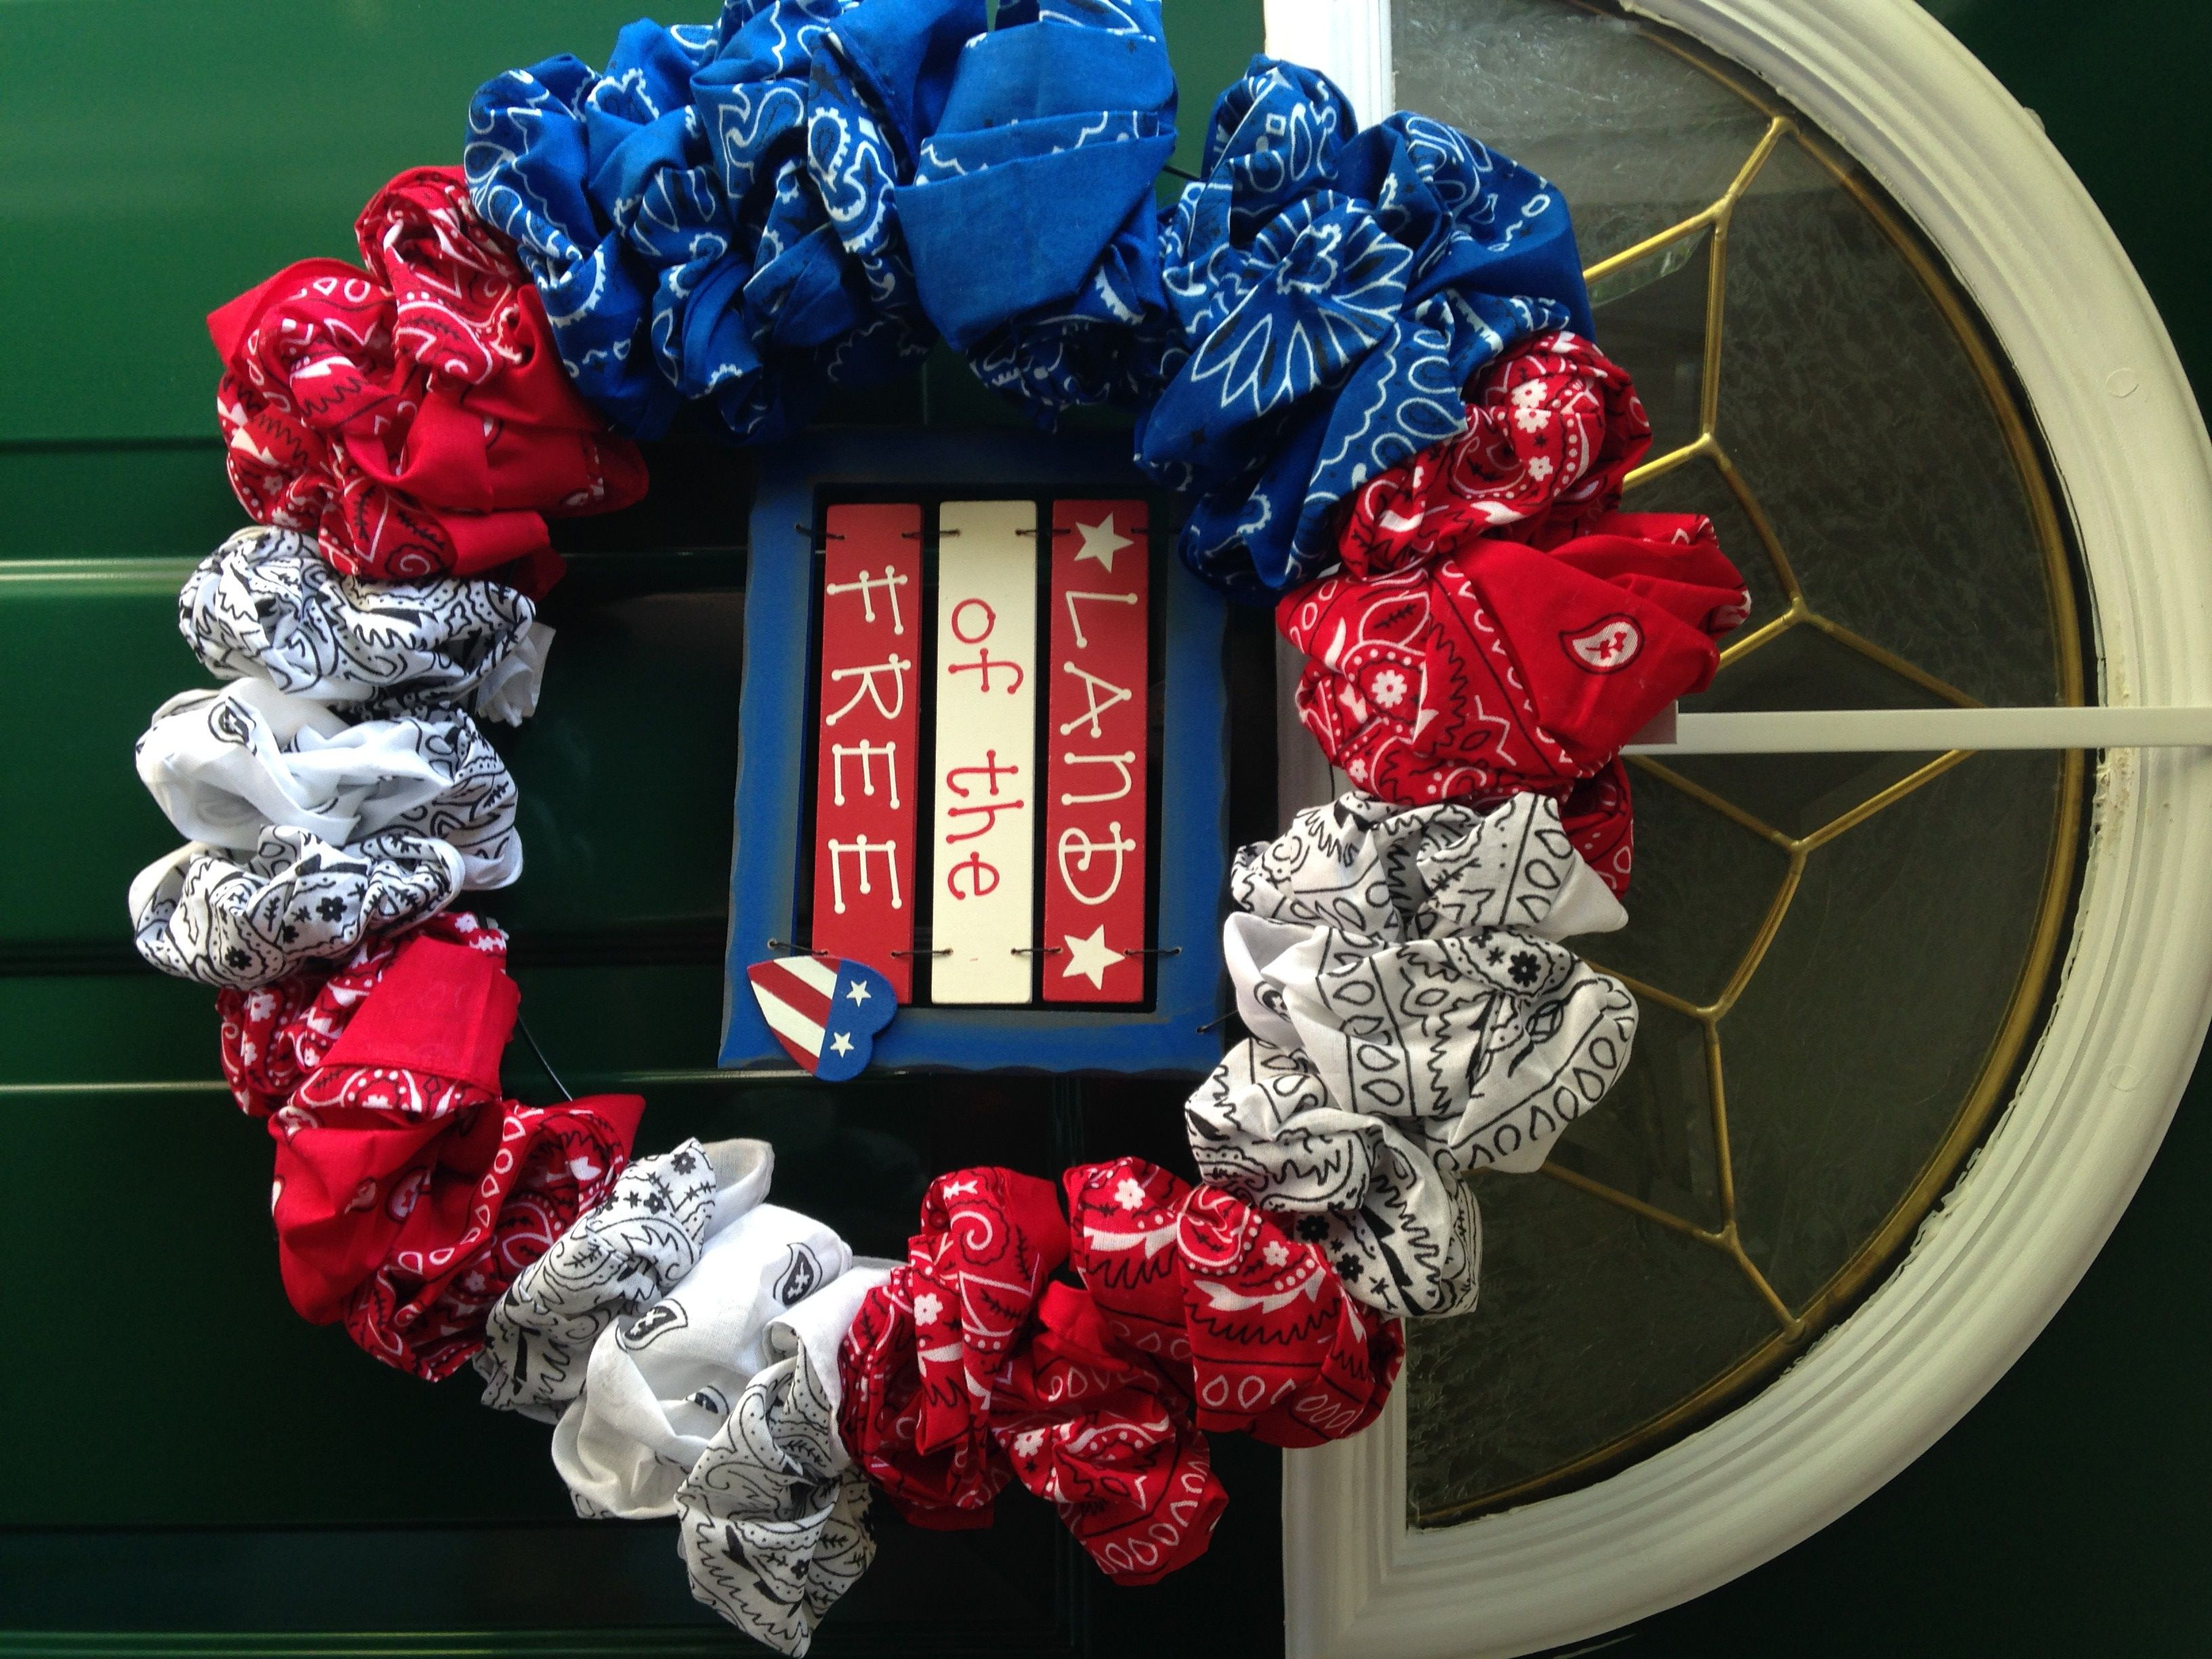 Diy Bandana Wreath Vmi Diy Pinterest Bandanas Wreaths And Craft